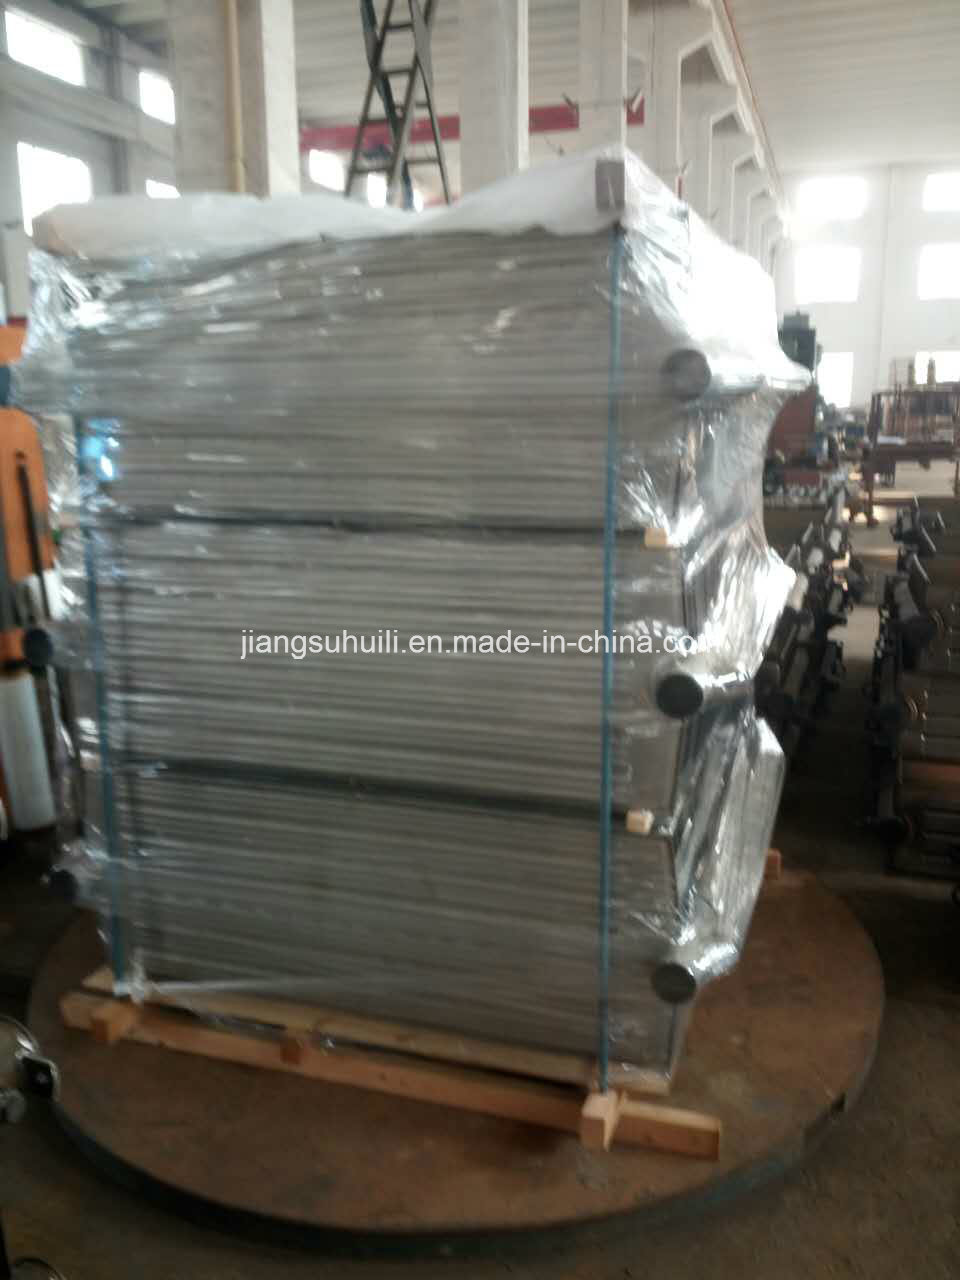 Standard Export Packing Transformer Radiators